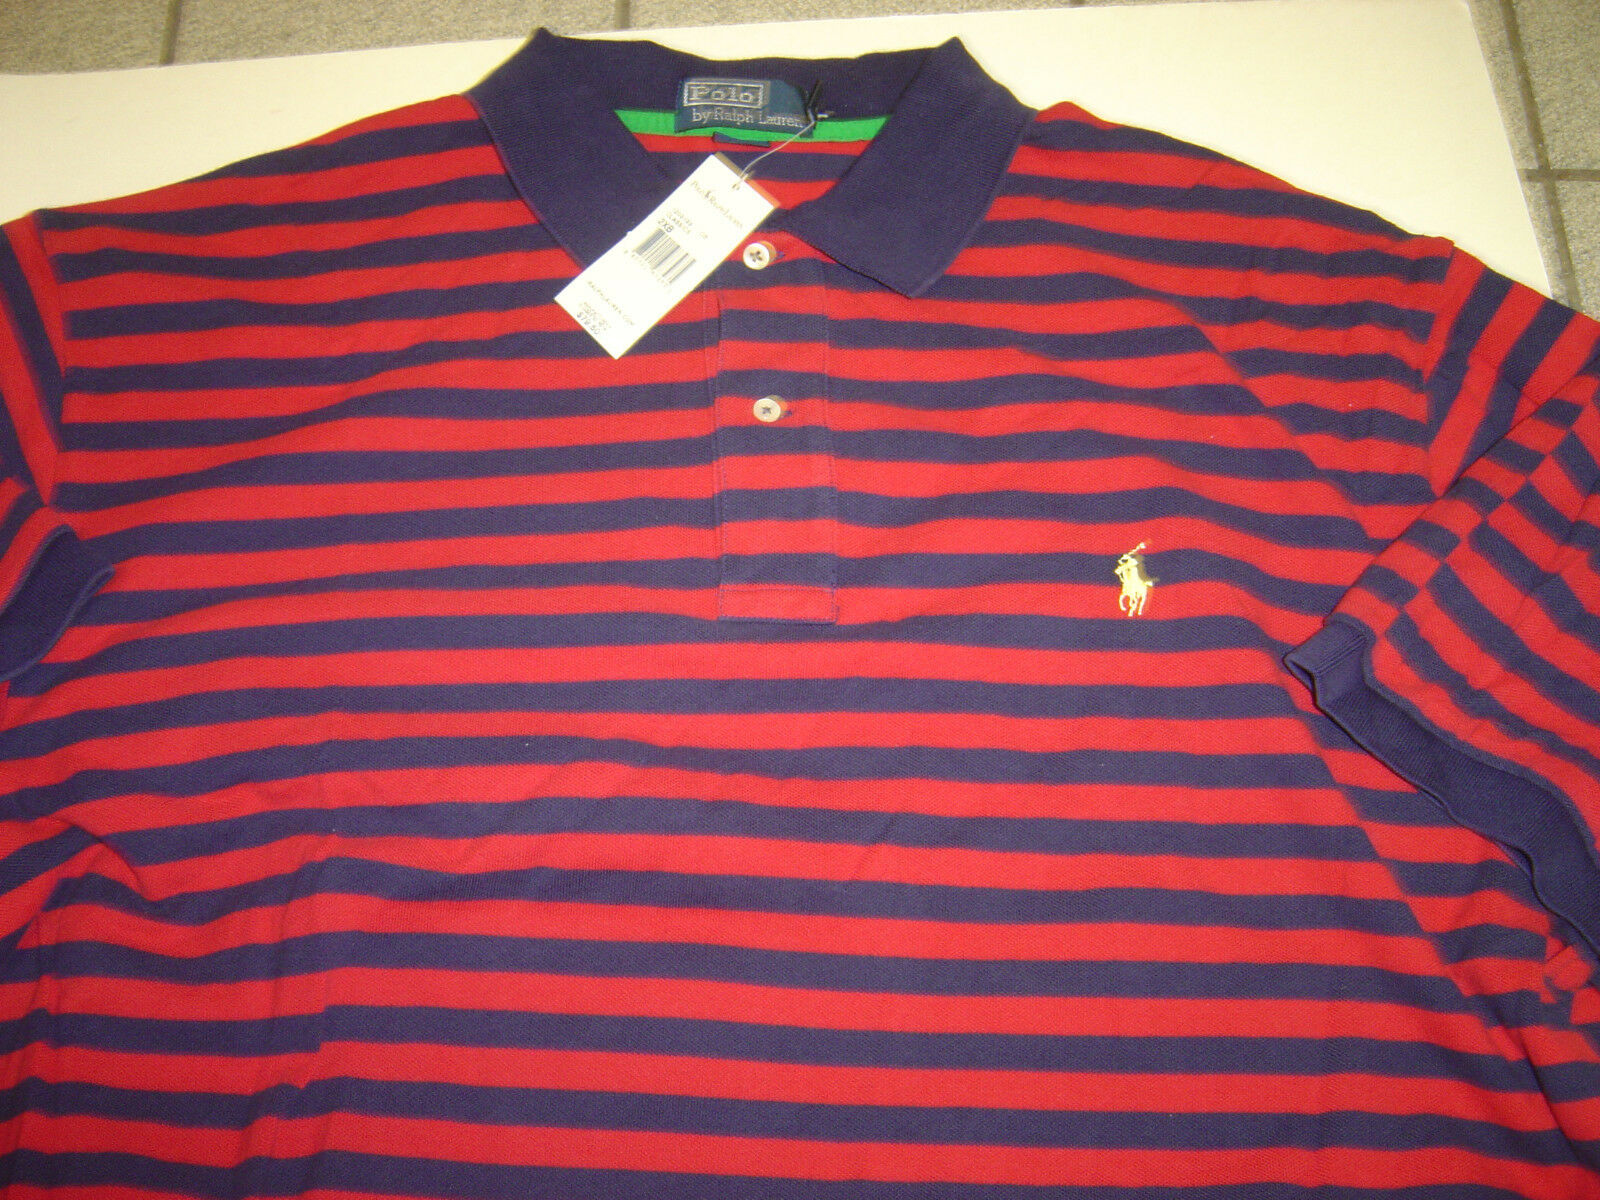 BIG MENS RALPH LAUREN NAVY-RED W YELLOW POLO S S POLO SHIRT SIZE 2X